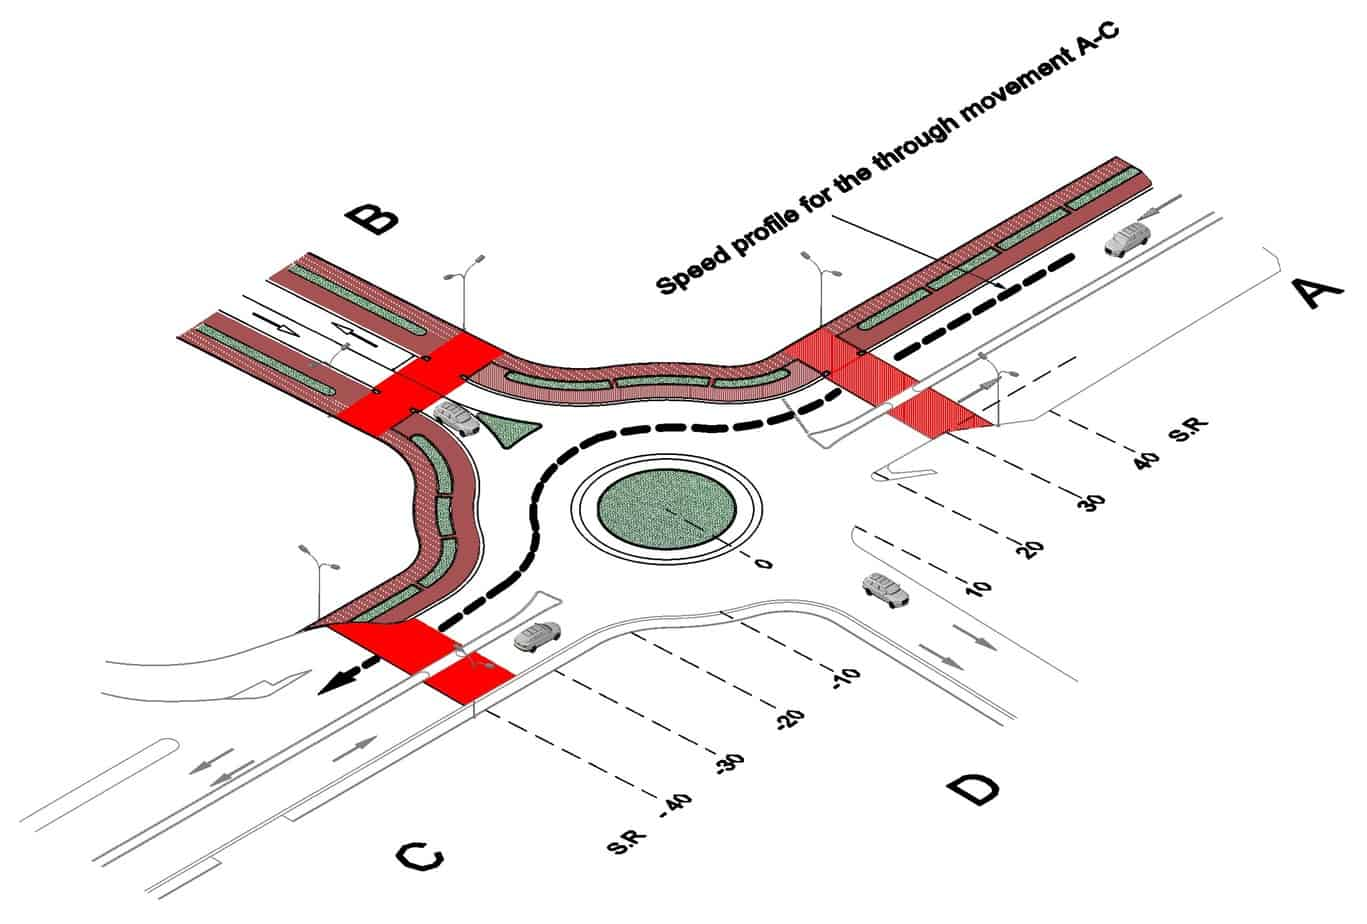 Speed profile for the through movement A-C along the roundabout 1